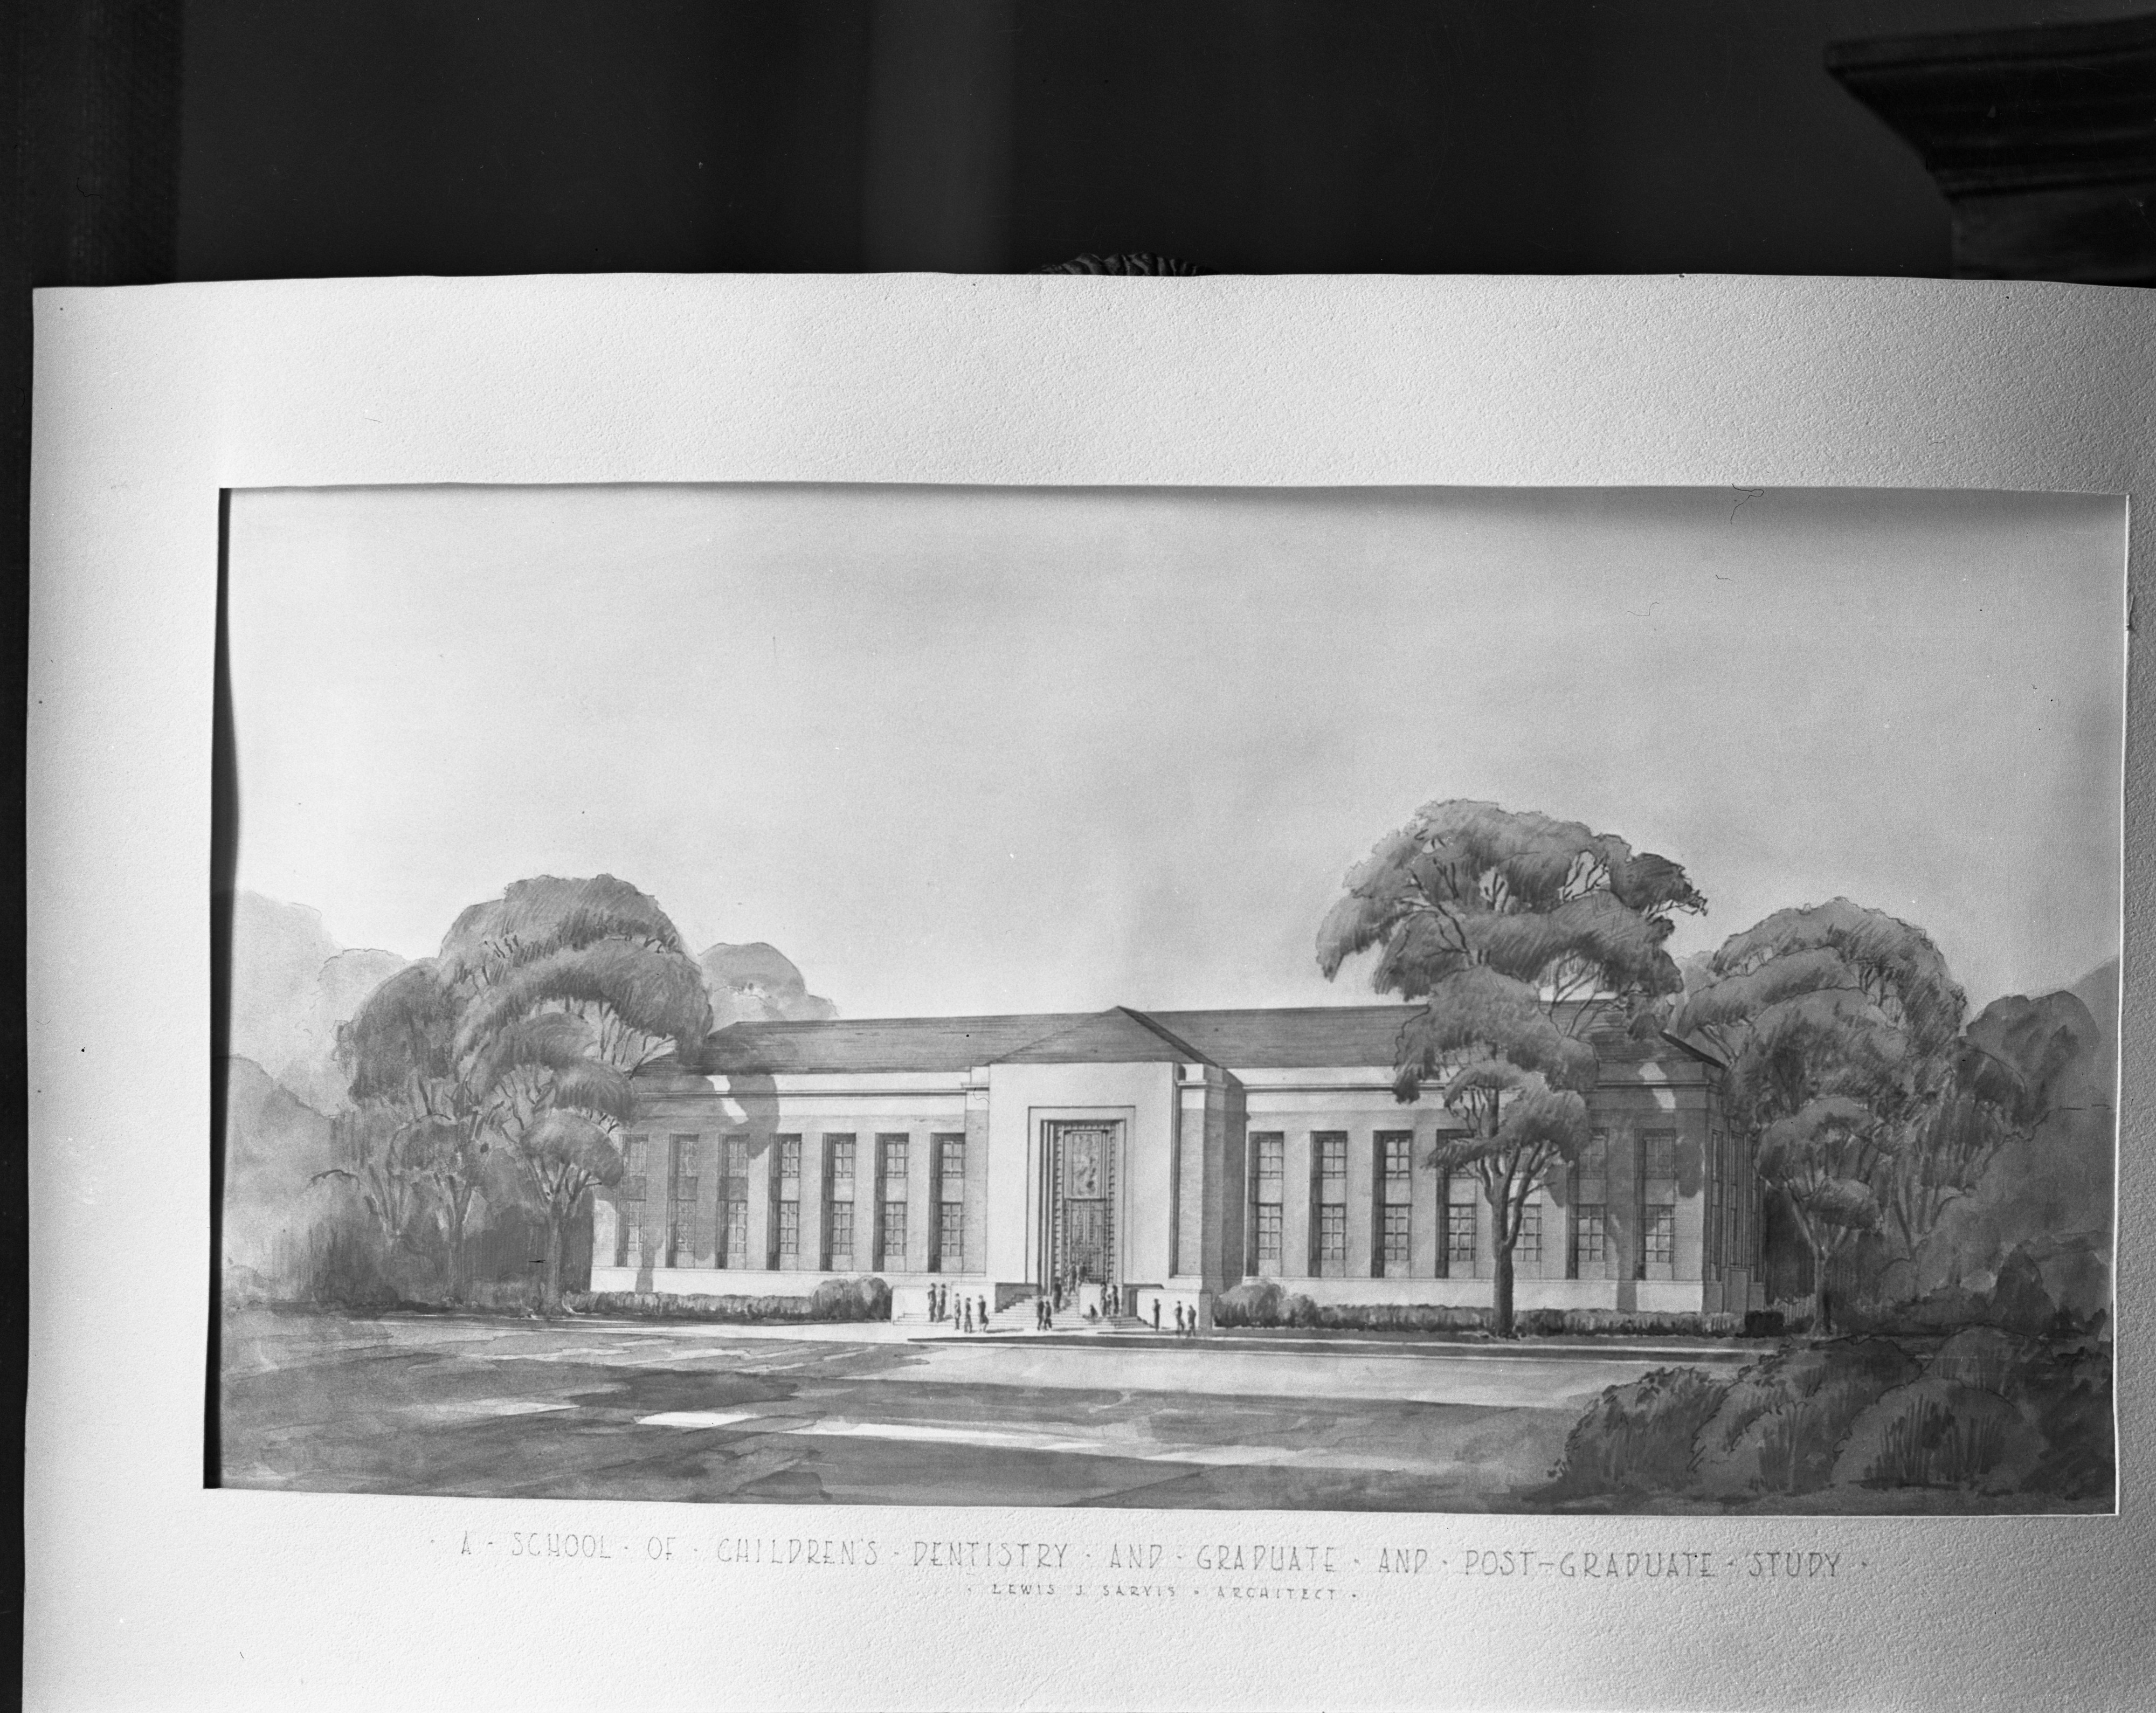 Drawing of Proposed new University of Michigan Dental School, December 1938 image